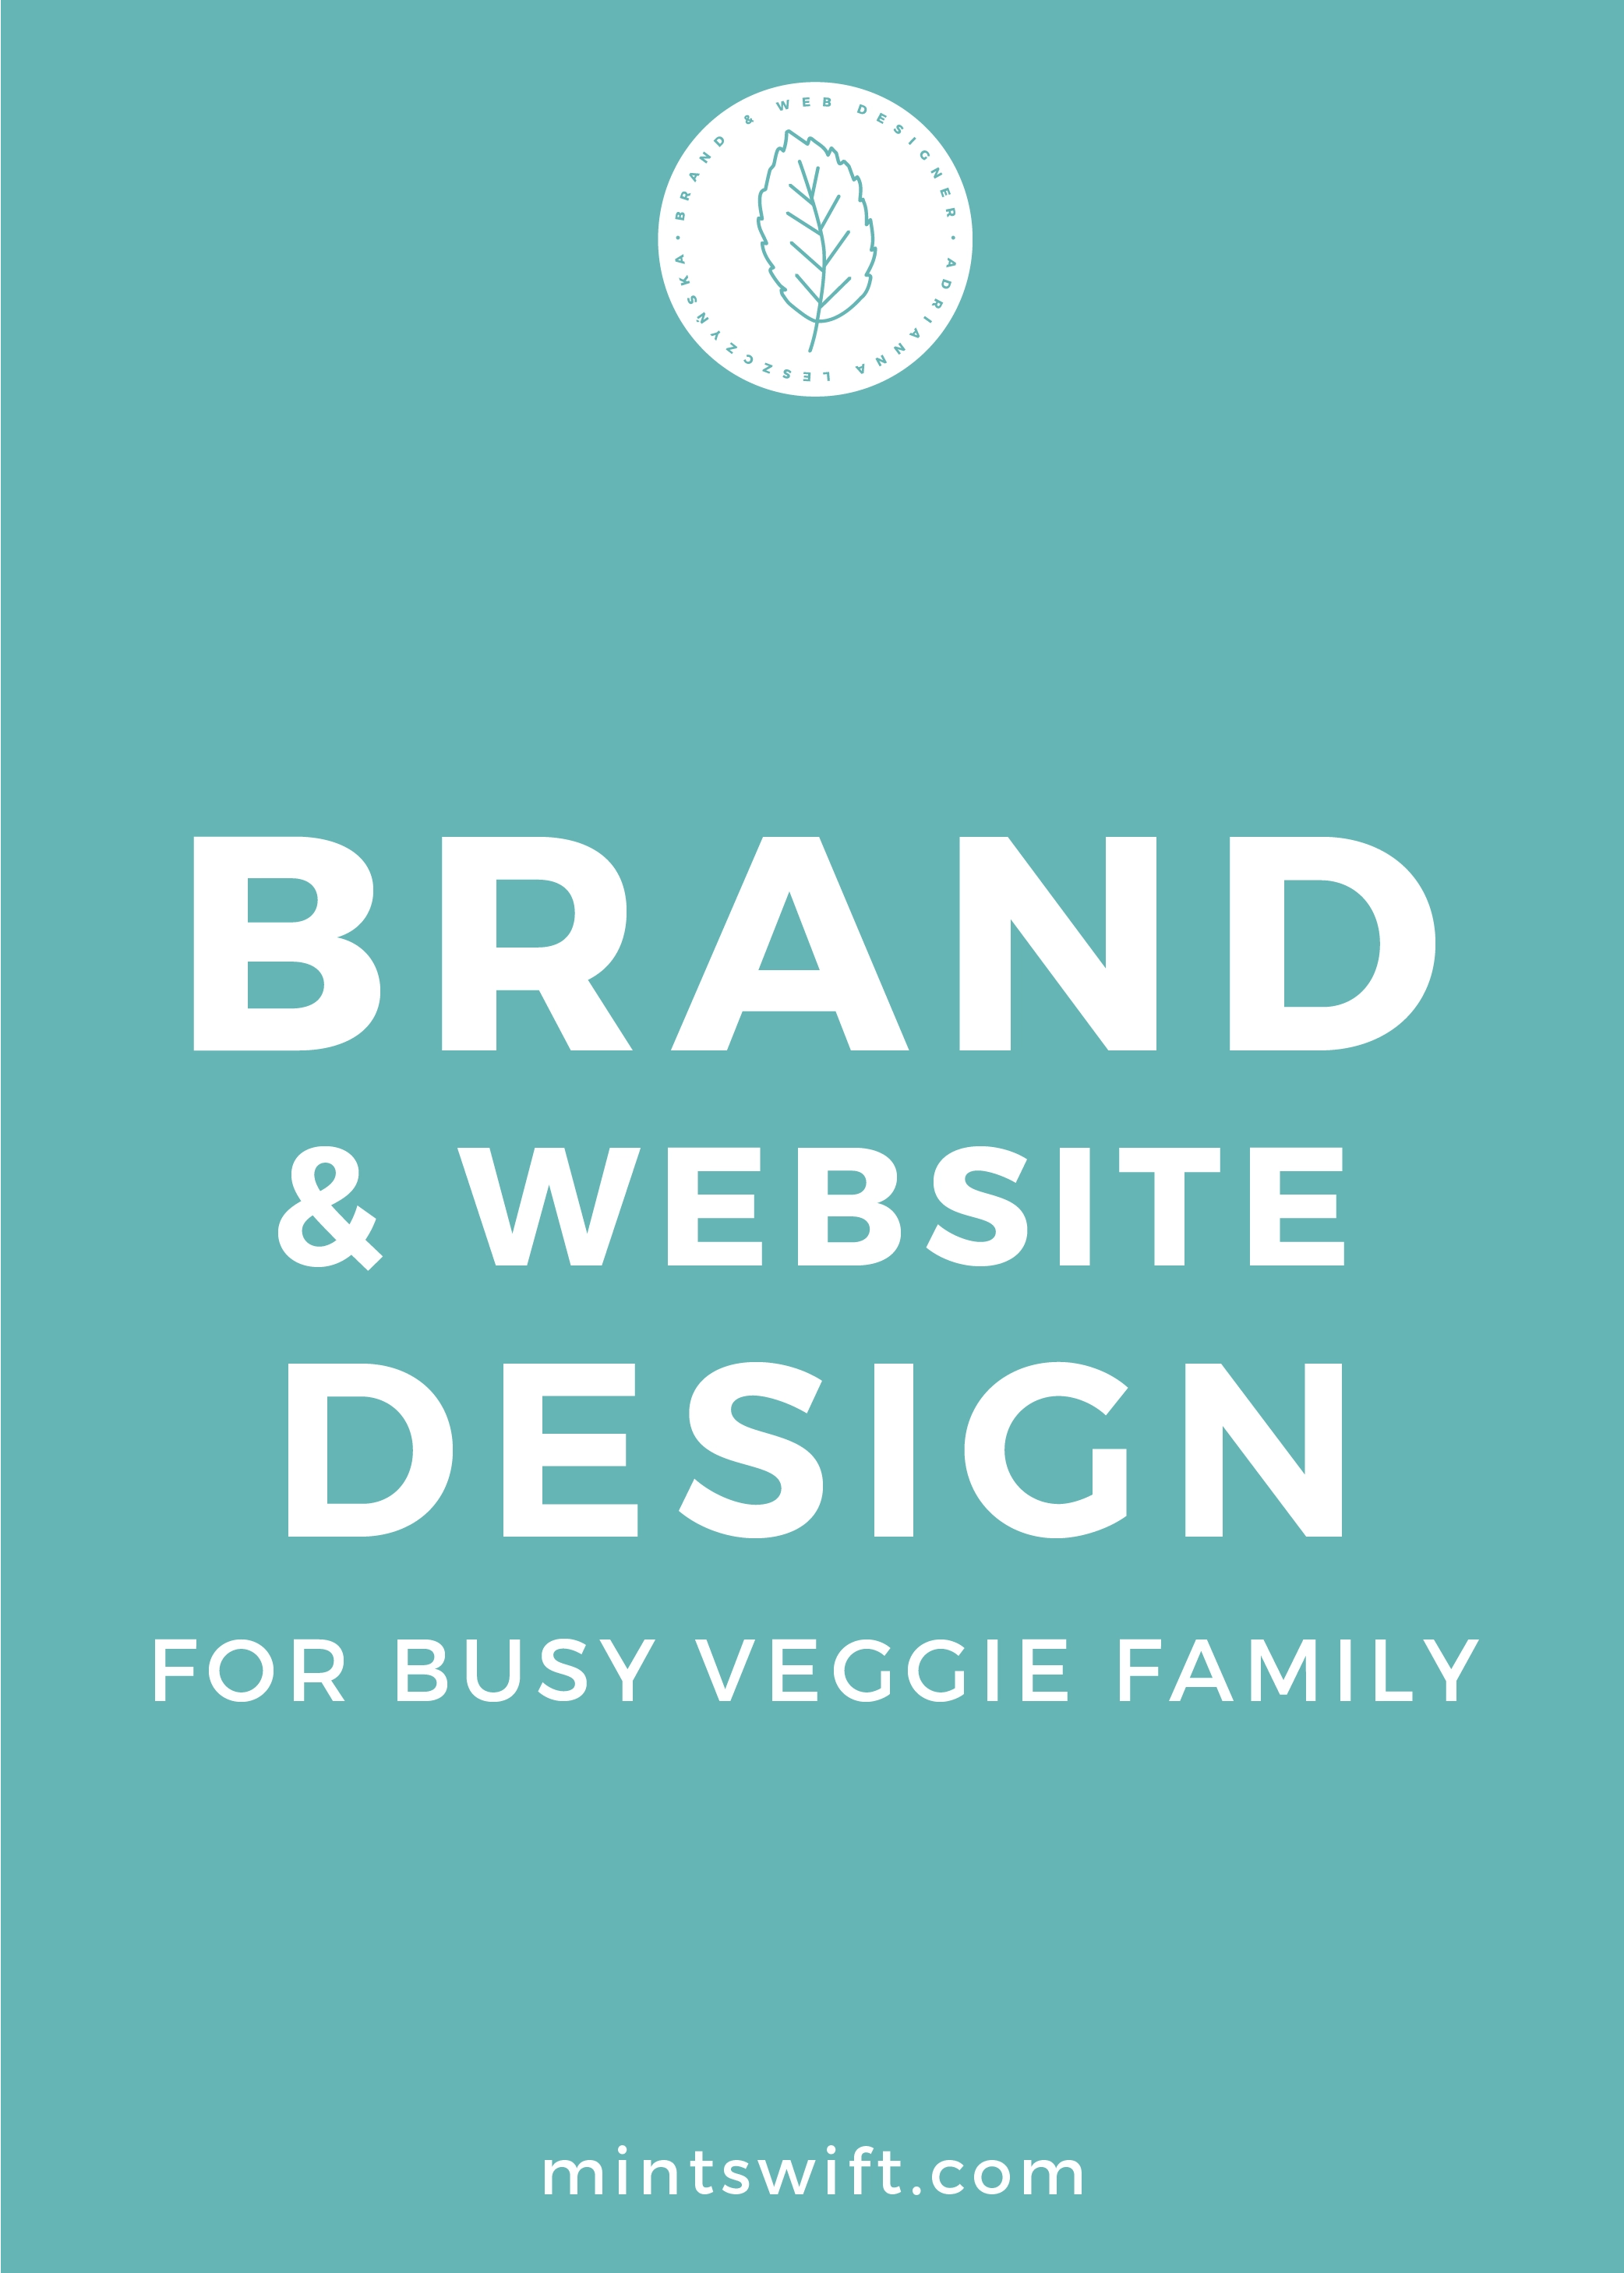 Brand & Website Design for Busy Veggie Family